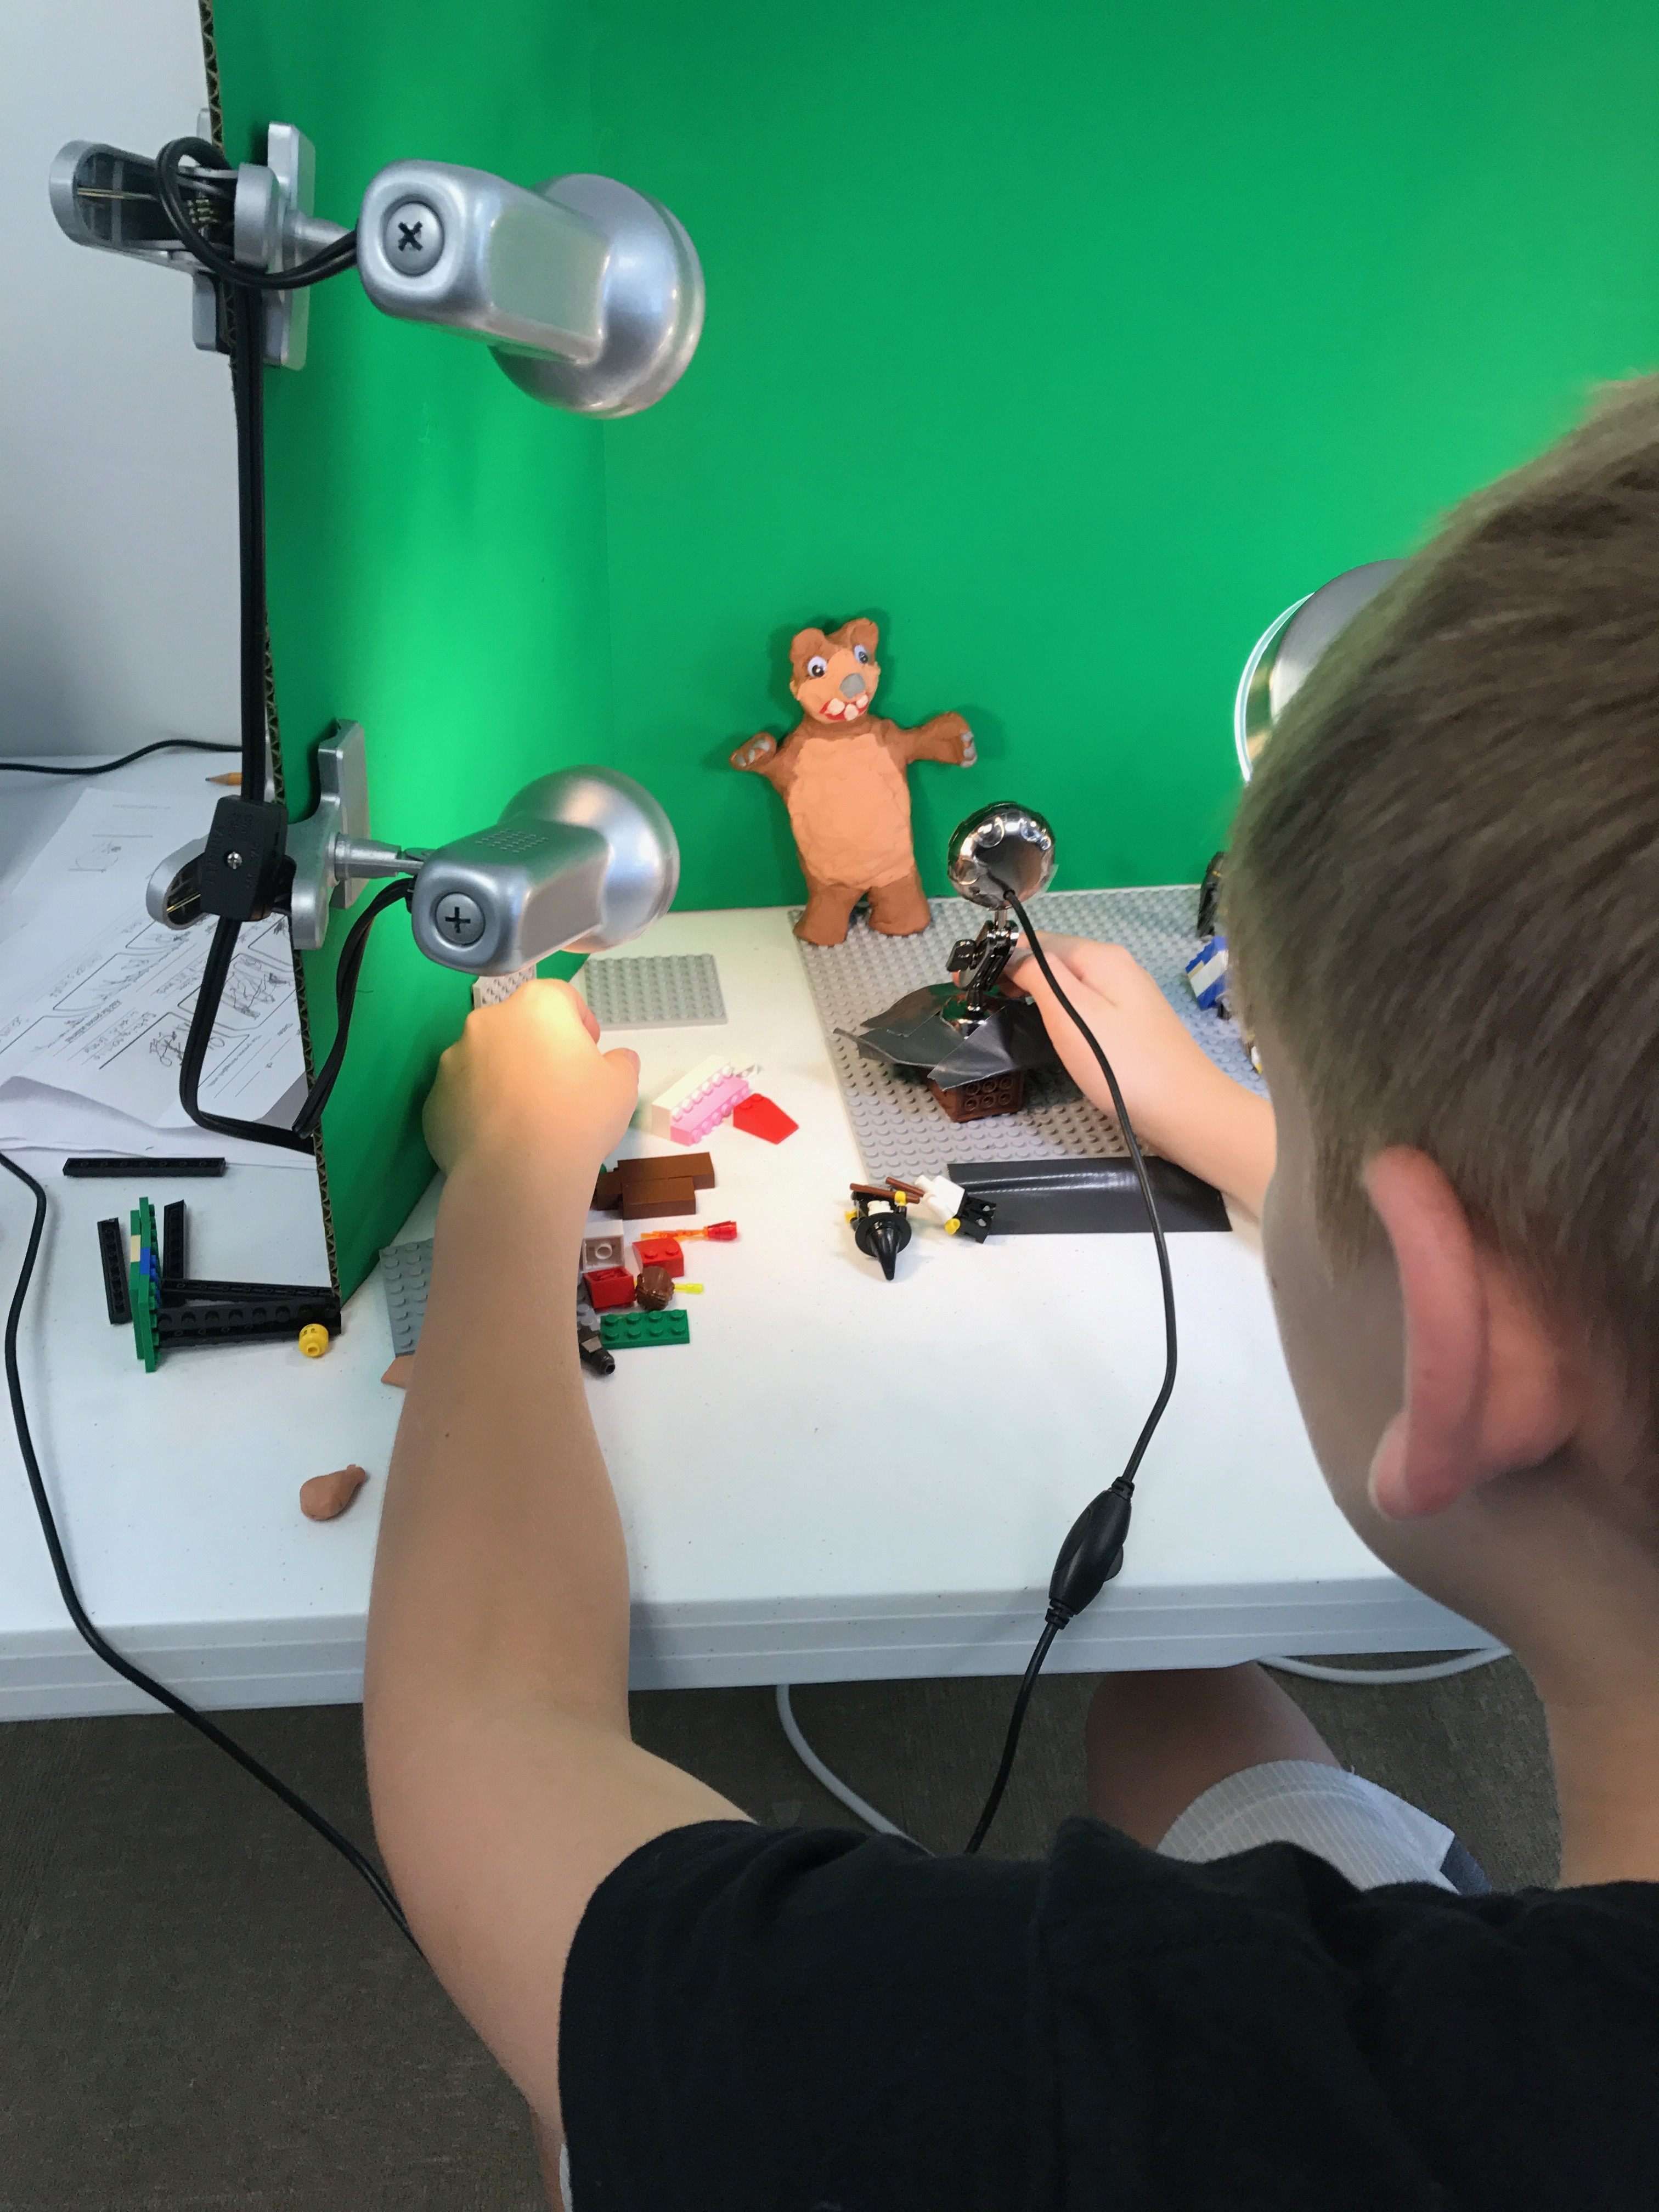 Why Stop-Motion Animation?